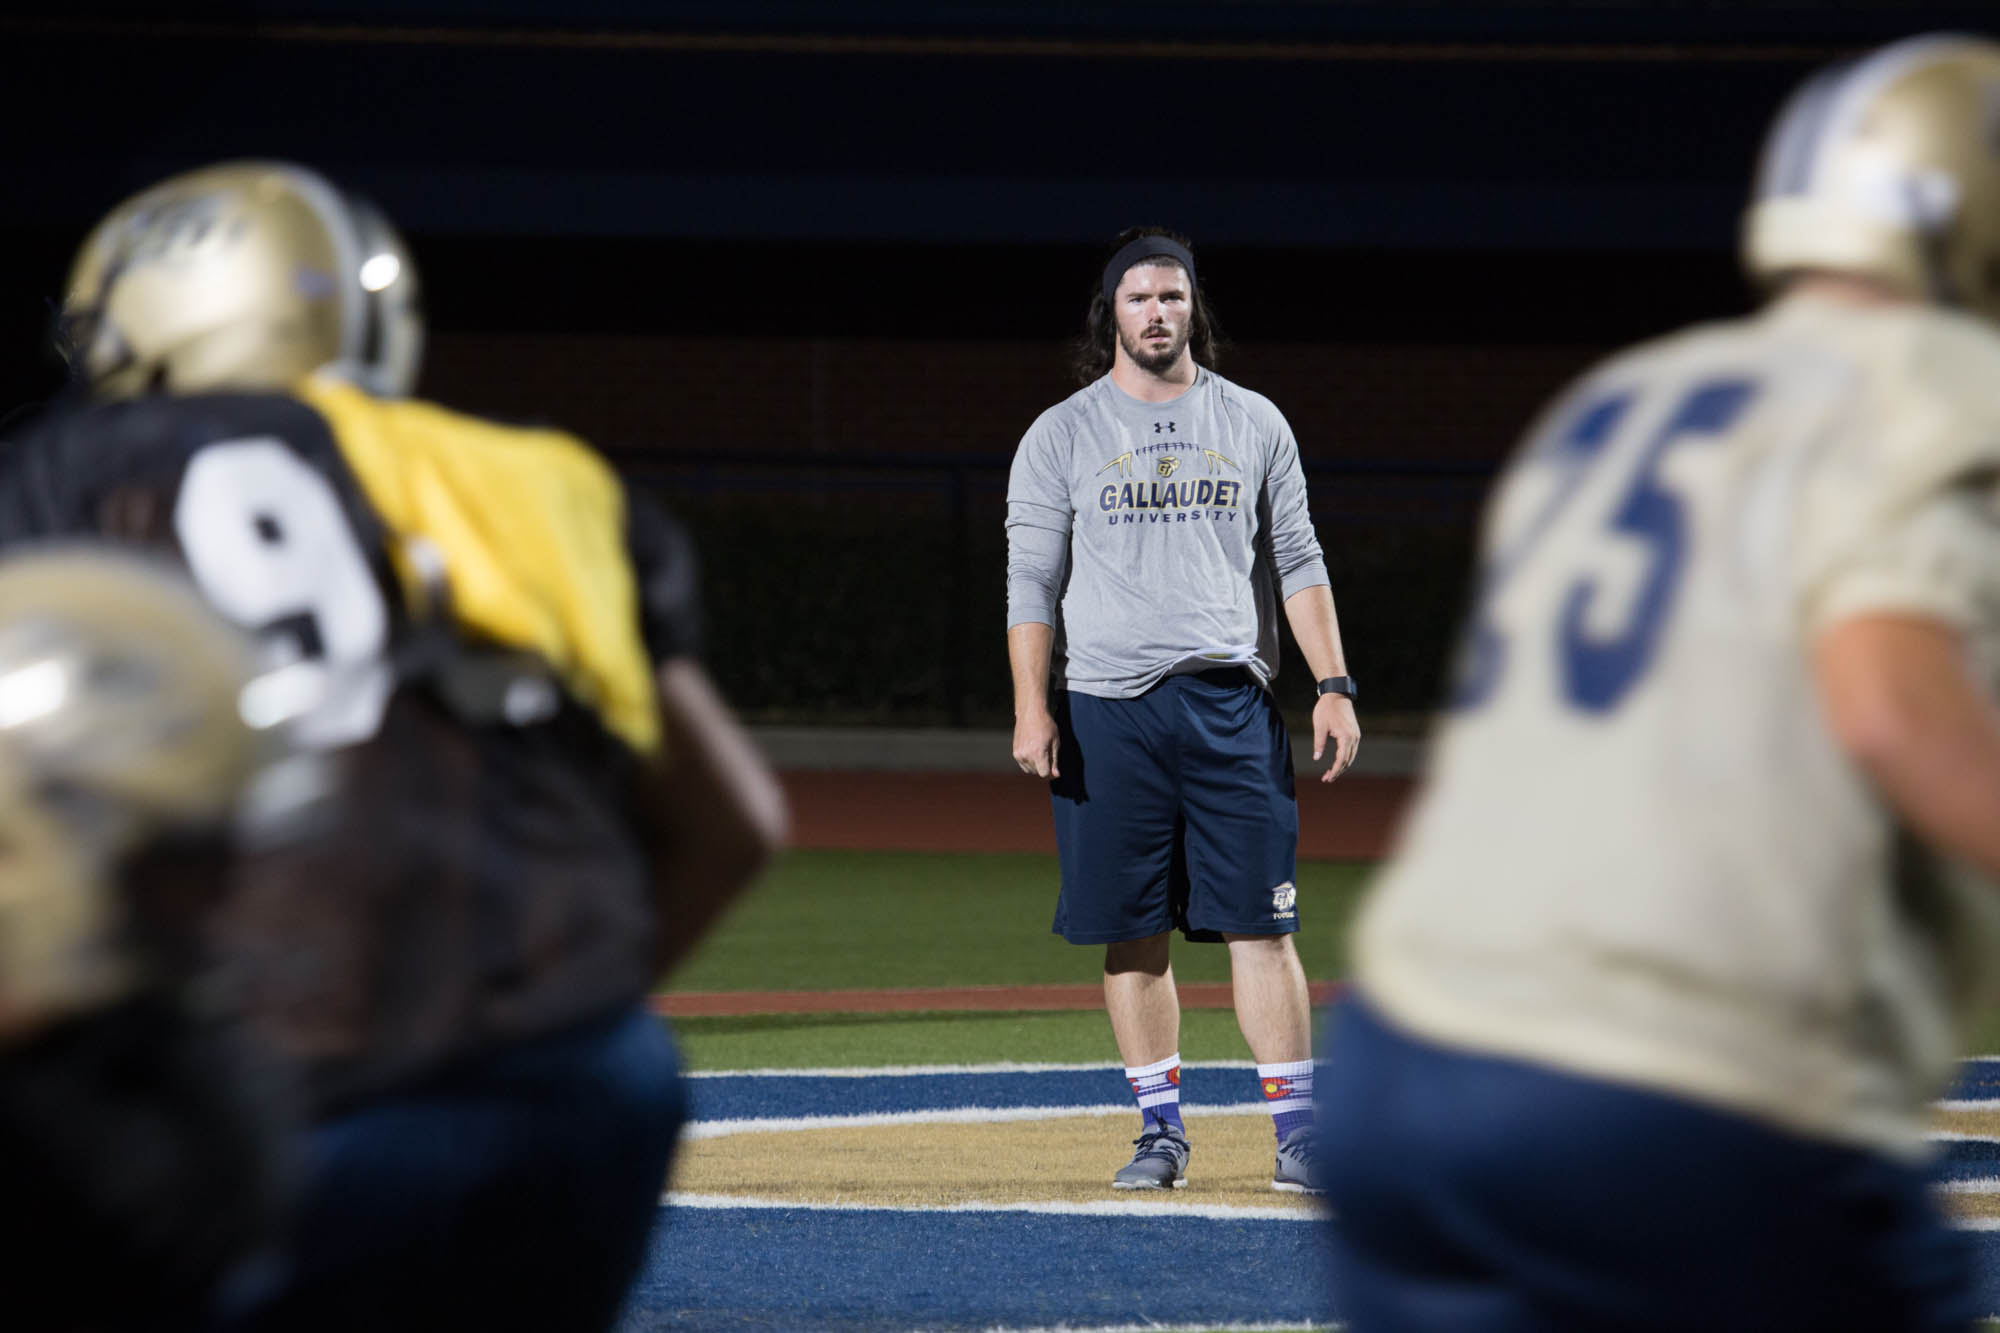 Shelby Bean, 25, watches his linebackers run a drill at football practice on September 14, 2016 at Gallaudet University in Washington, D.C.